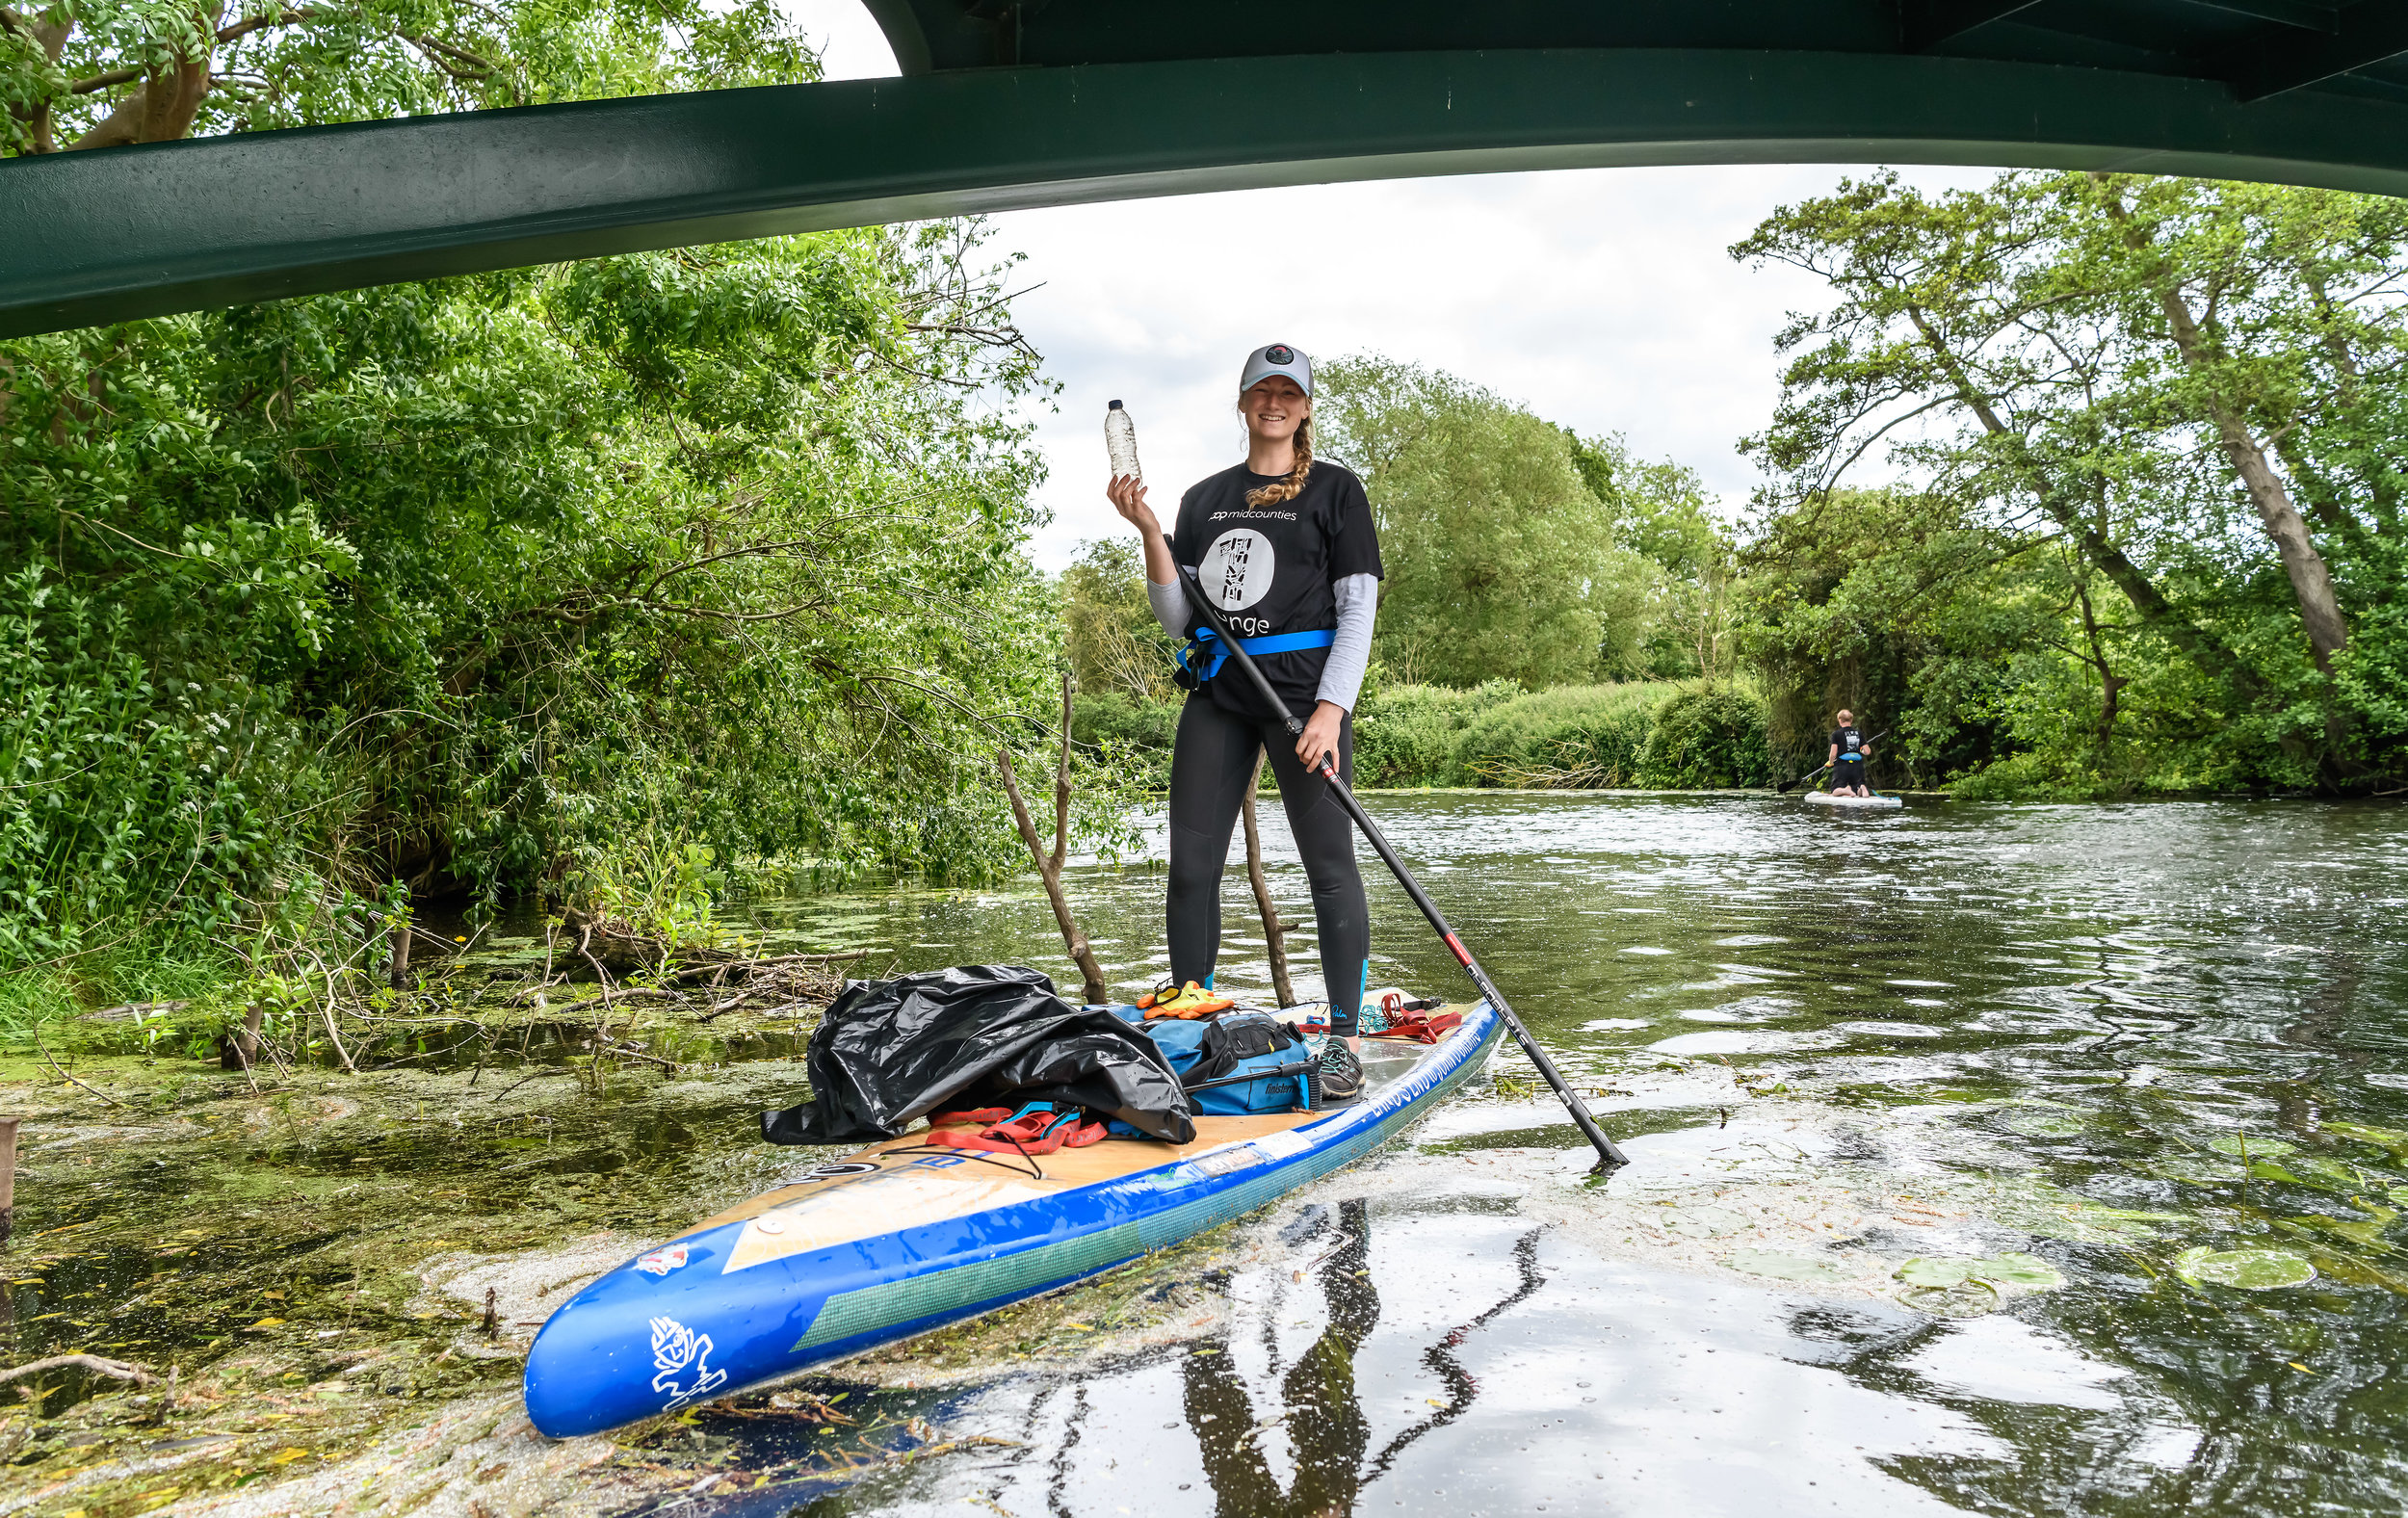 Cal Major SUP River Avon Midcounties Co-op World environment day 2019 One Change